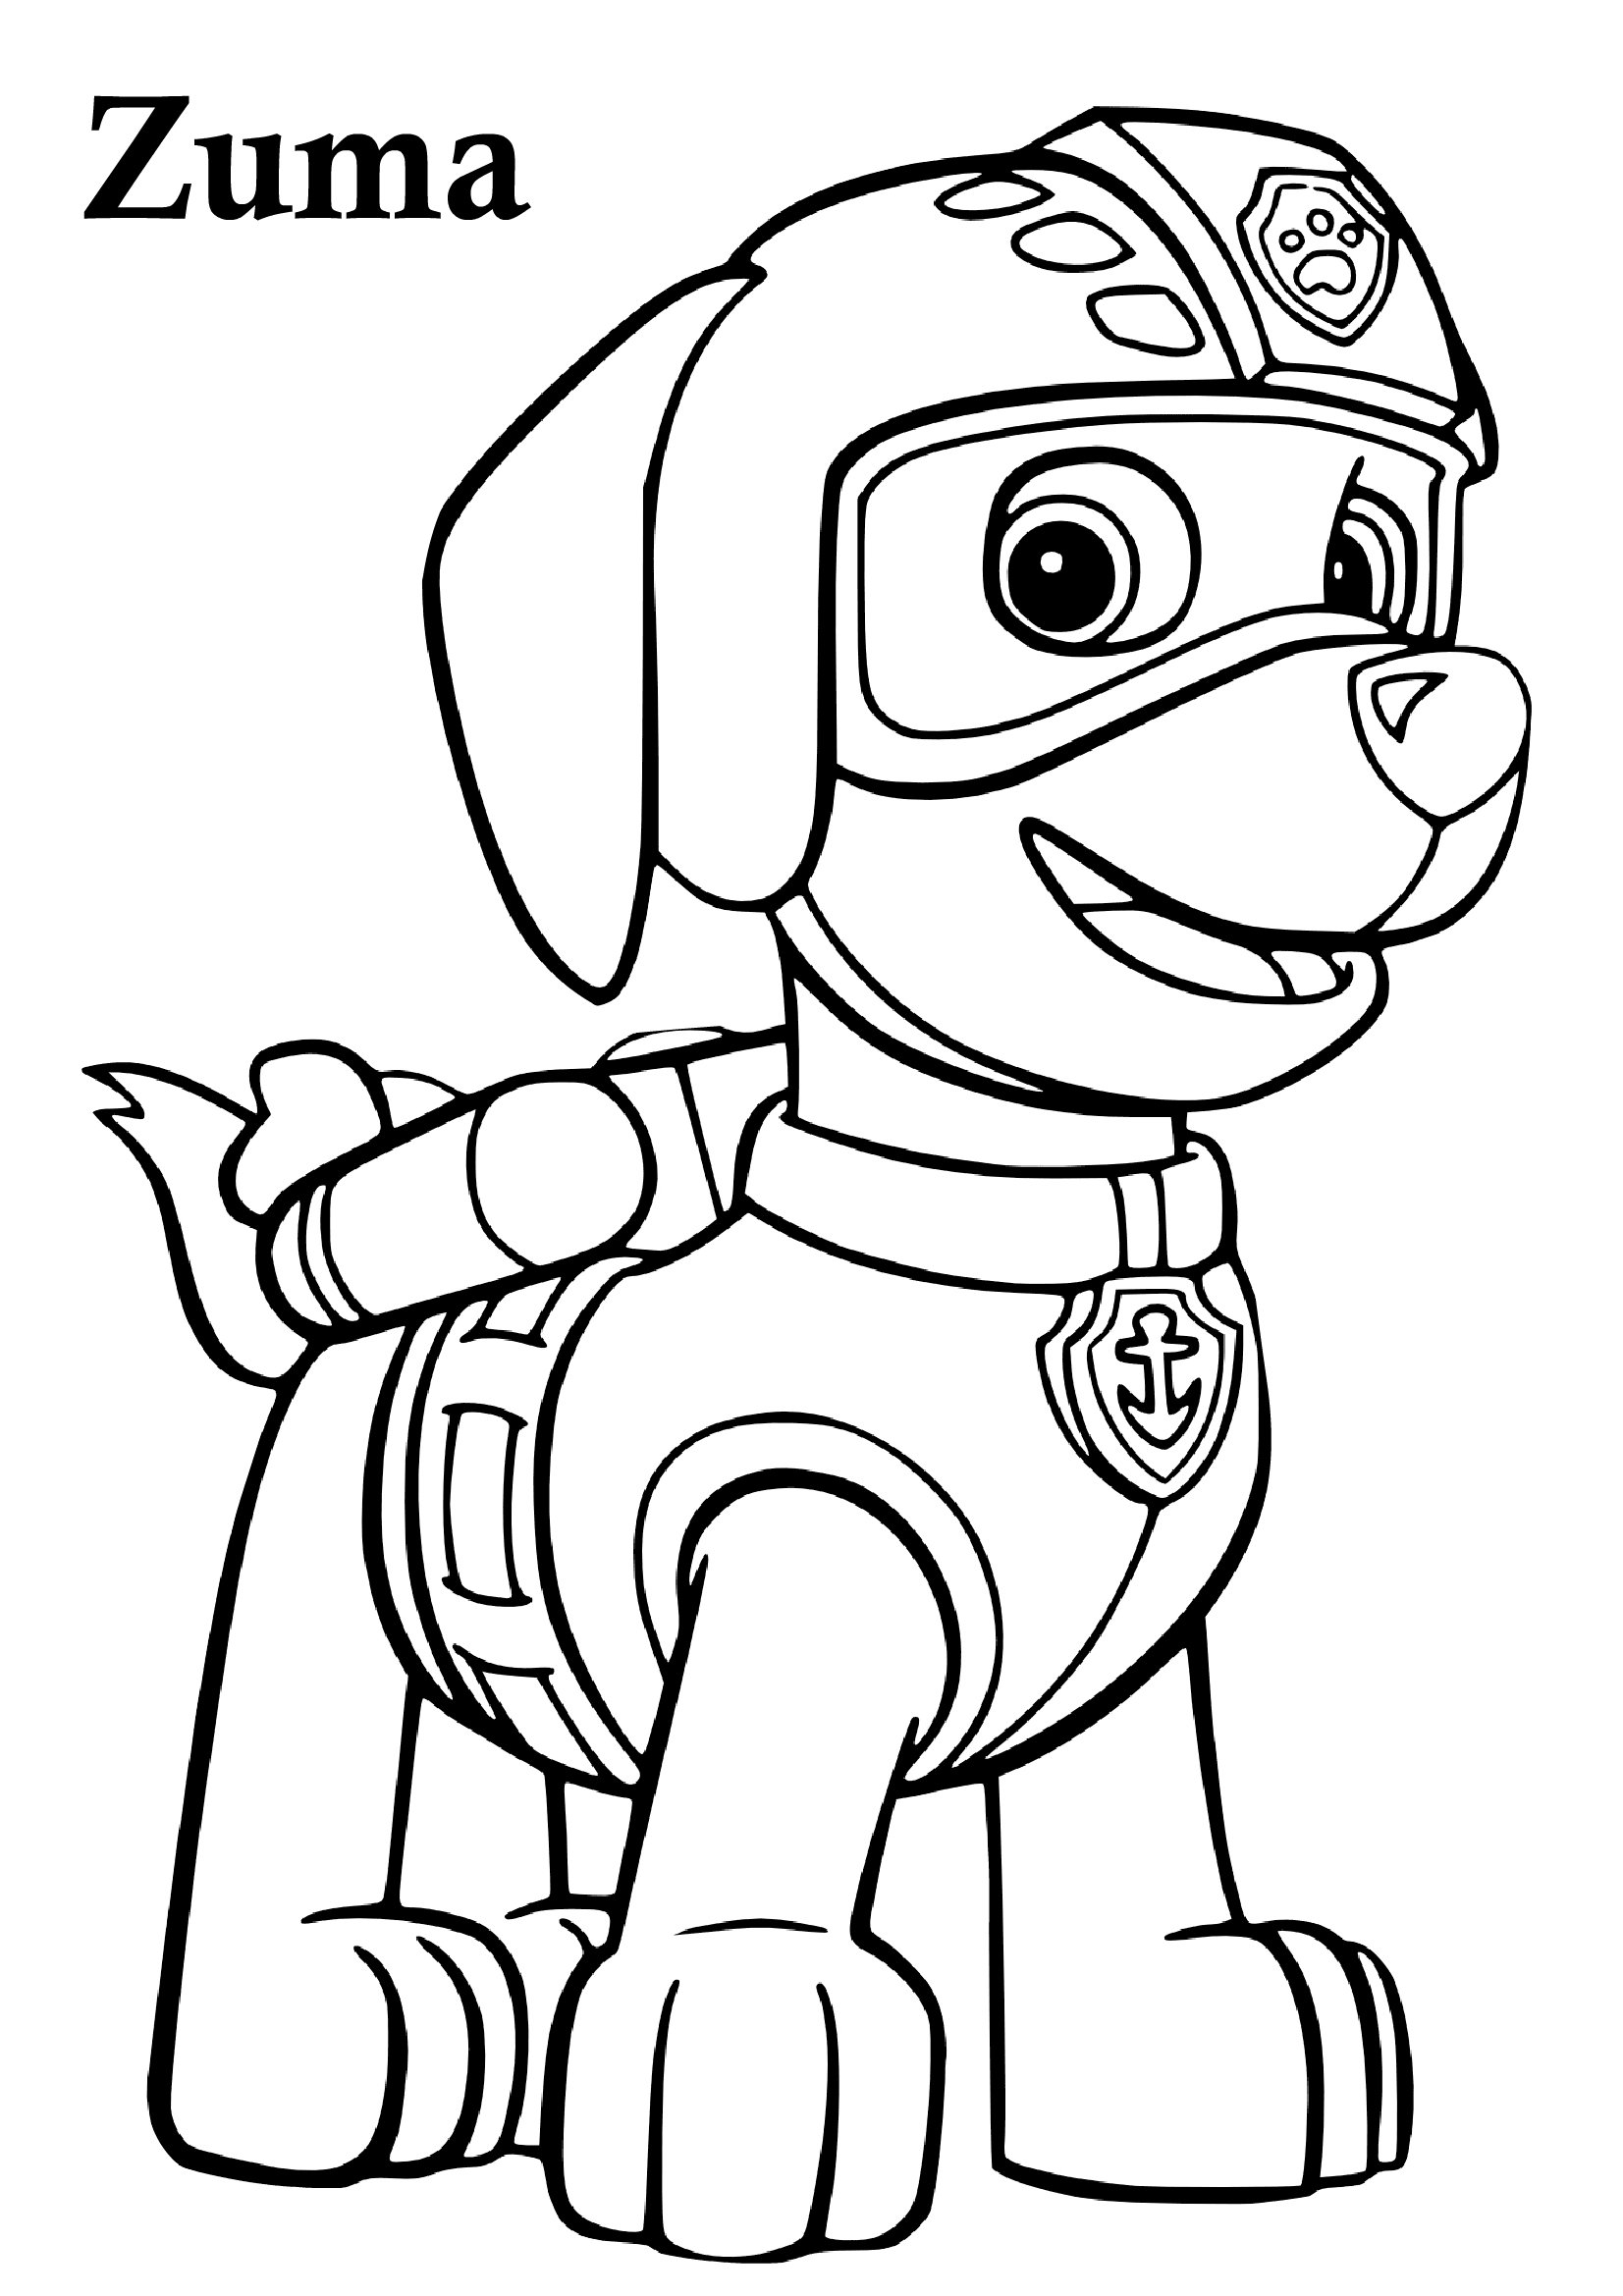 36 Paw Patrol Coloring Pages {Download All Characters} - Print